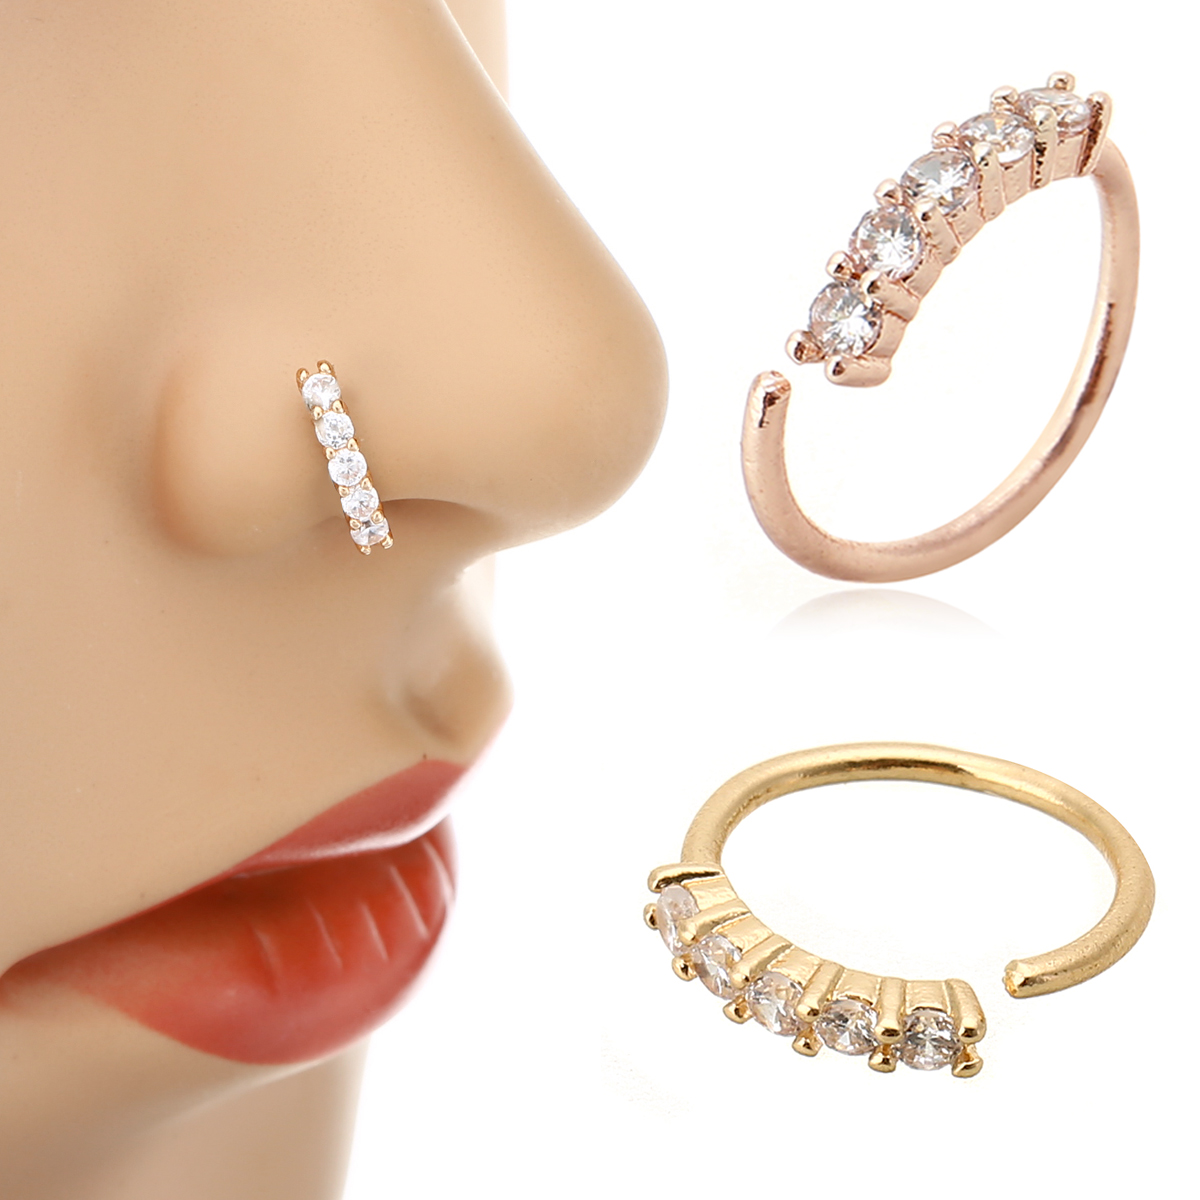 Trendy 5 Crystals Nose Ring Stainless Steel Sexy Rhinestone Nose Hoop Ring For Women Vintage Charms Jewelry Bijoux Femme Body Jewelry Aliexpress